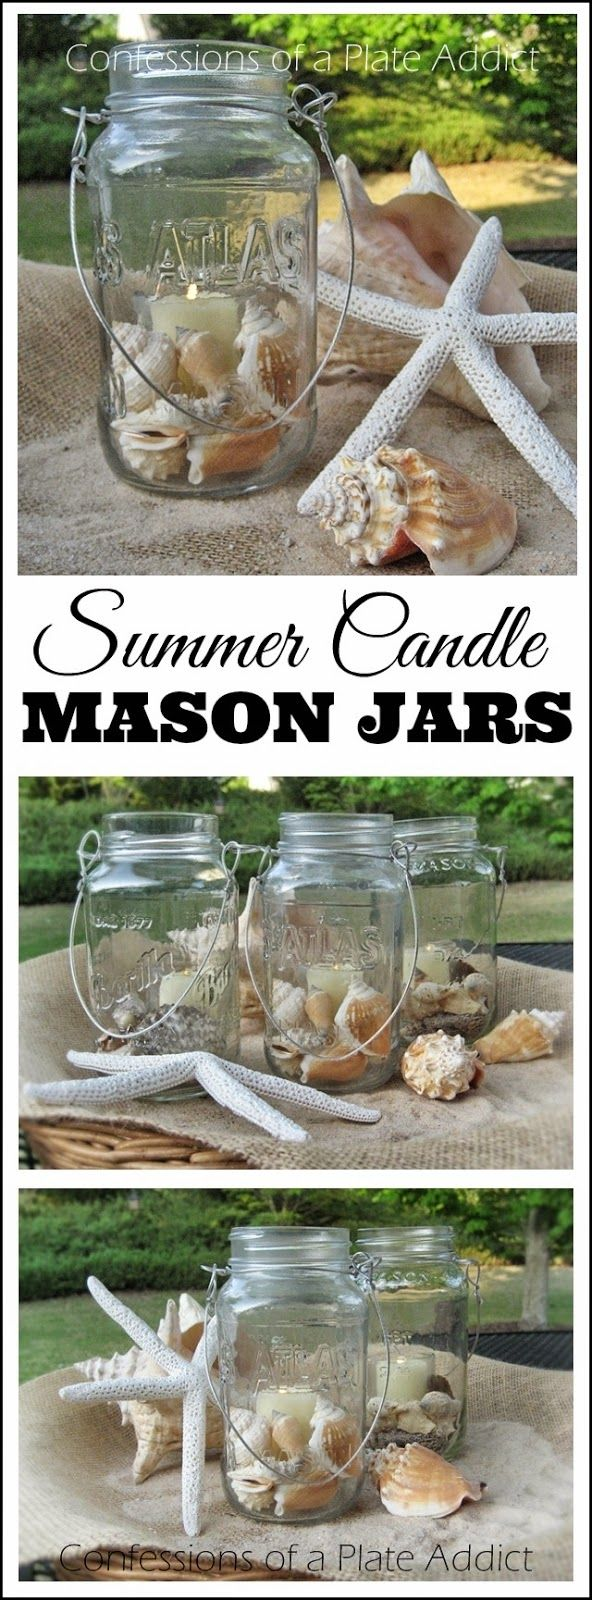 CONFESSIONS OF A PLATE ADDICT: Fun and Easy Summer Mason Jar Candles